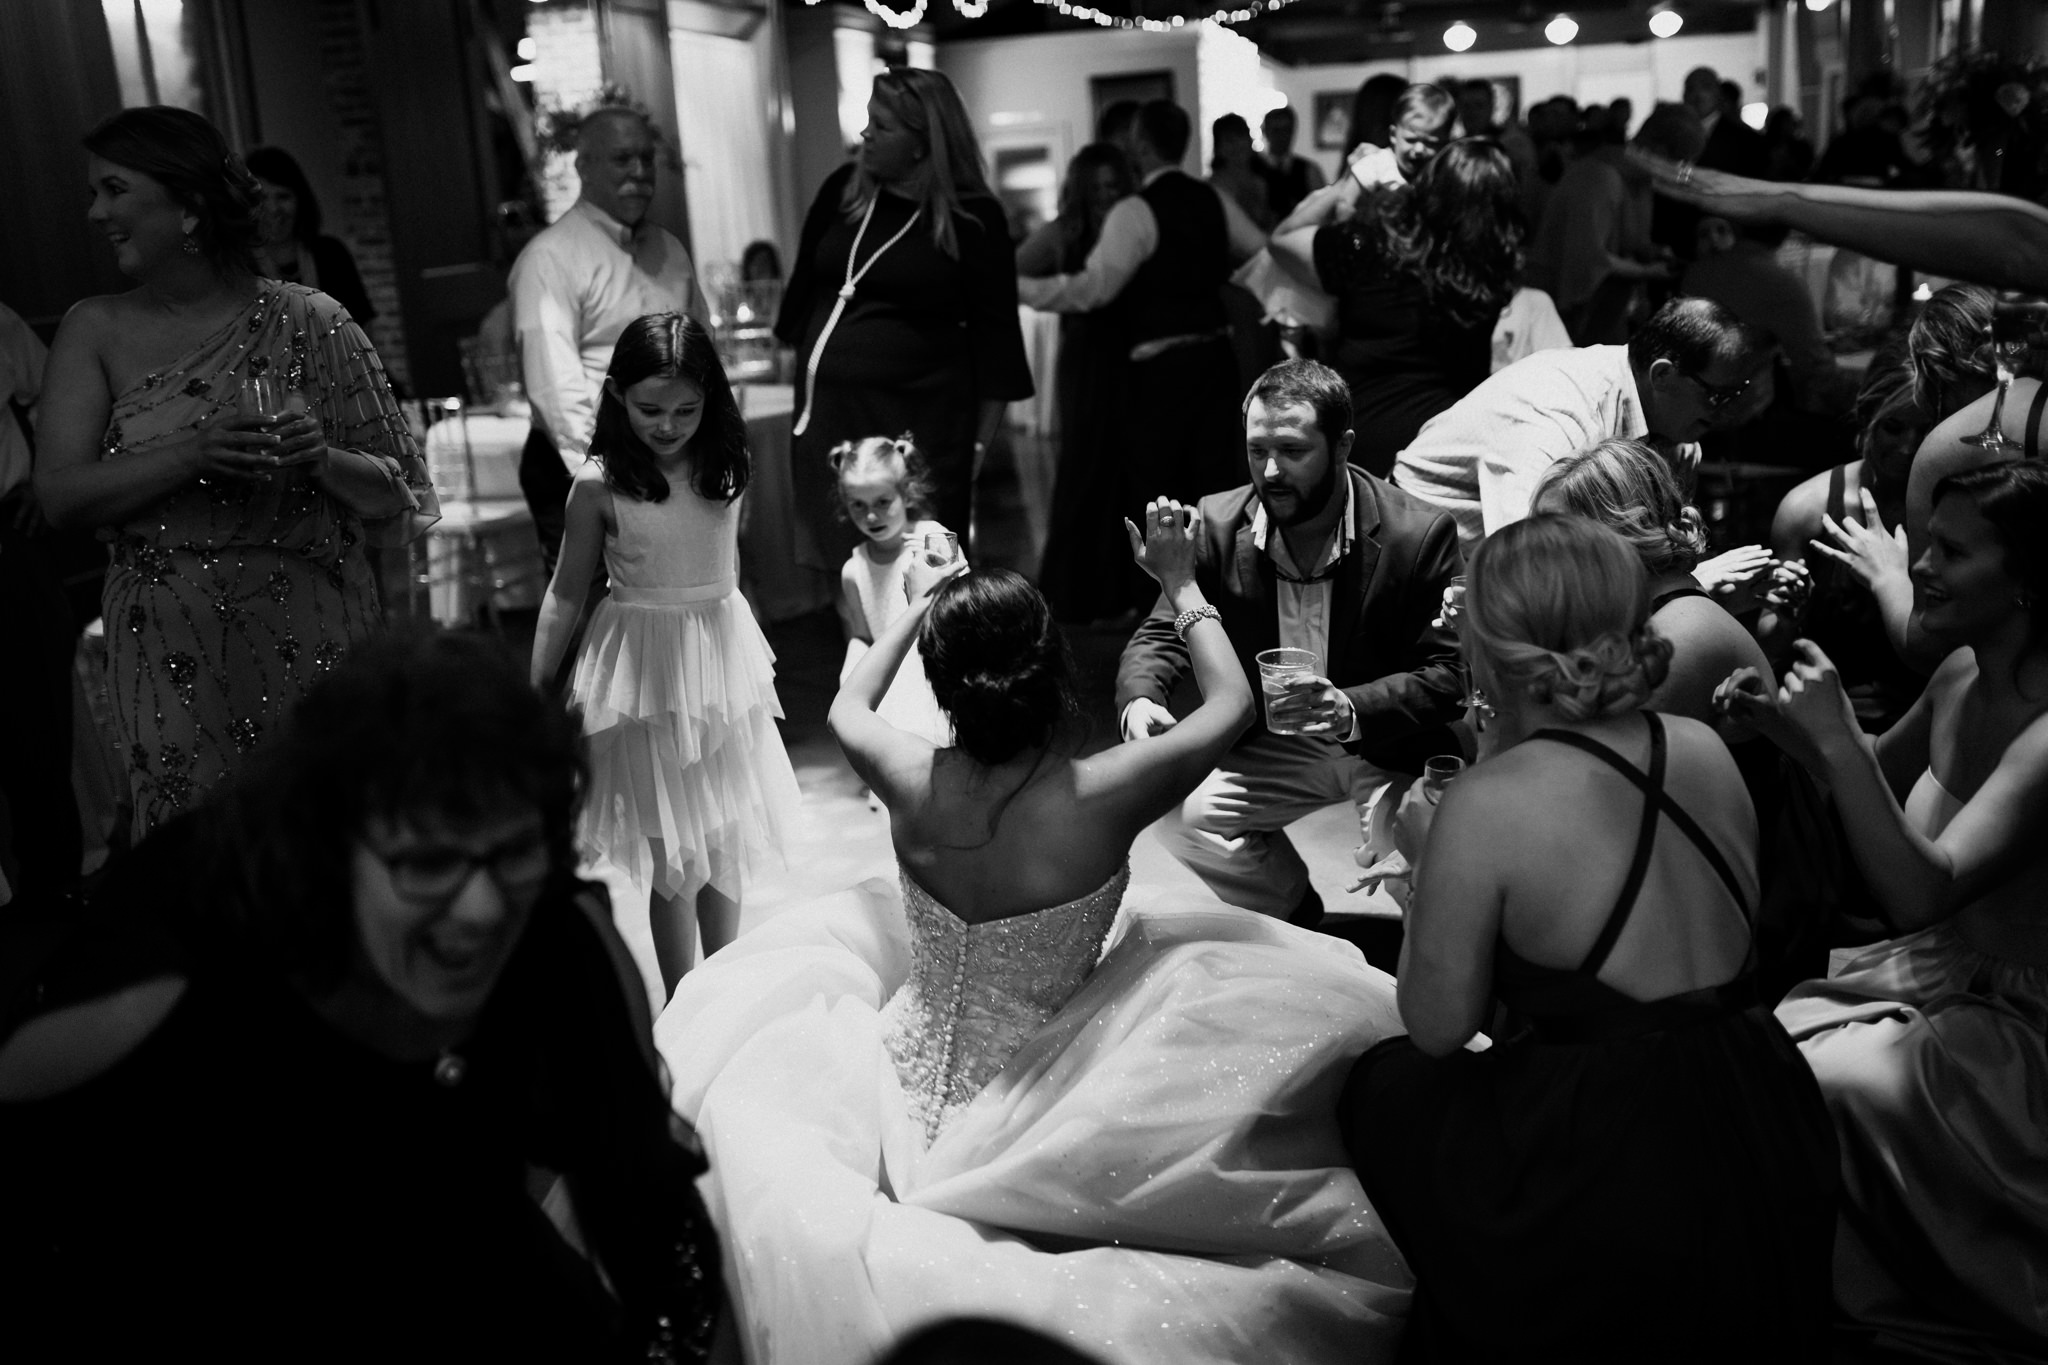 memphis-wedding-photographer-the-warmth-around-you-best-dance-moves-1.jpg